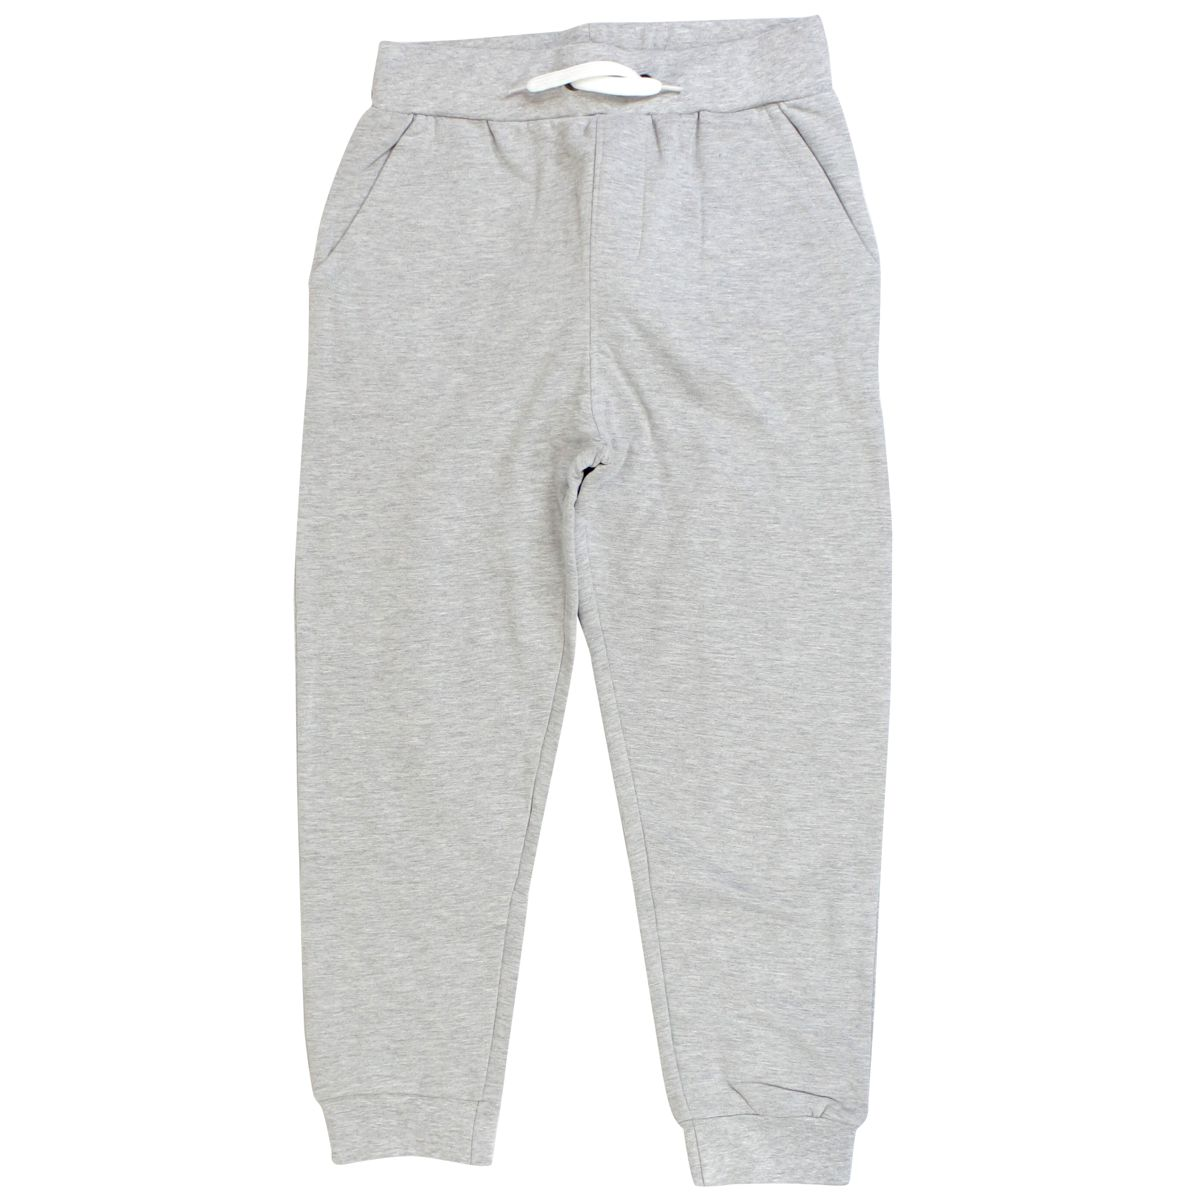 Cotton tracksuit pants with logo on the back Melange gray Bikkembergs